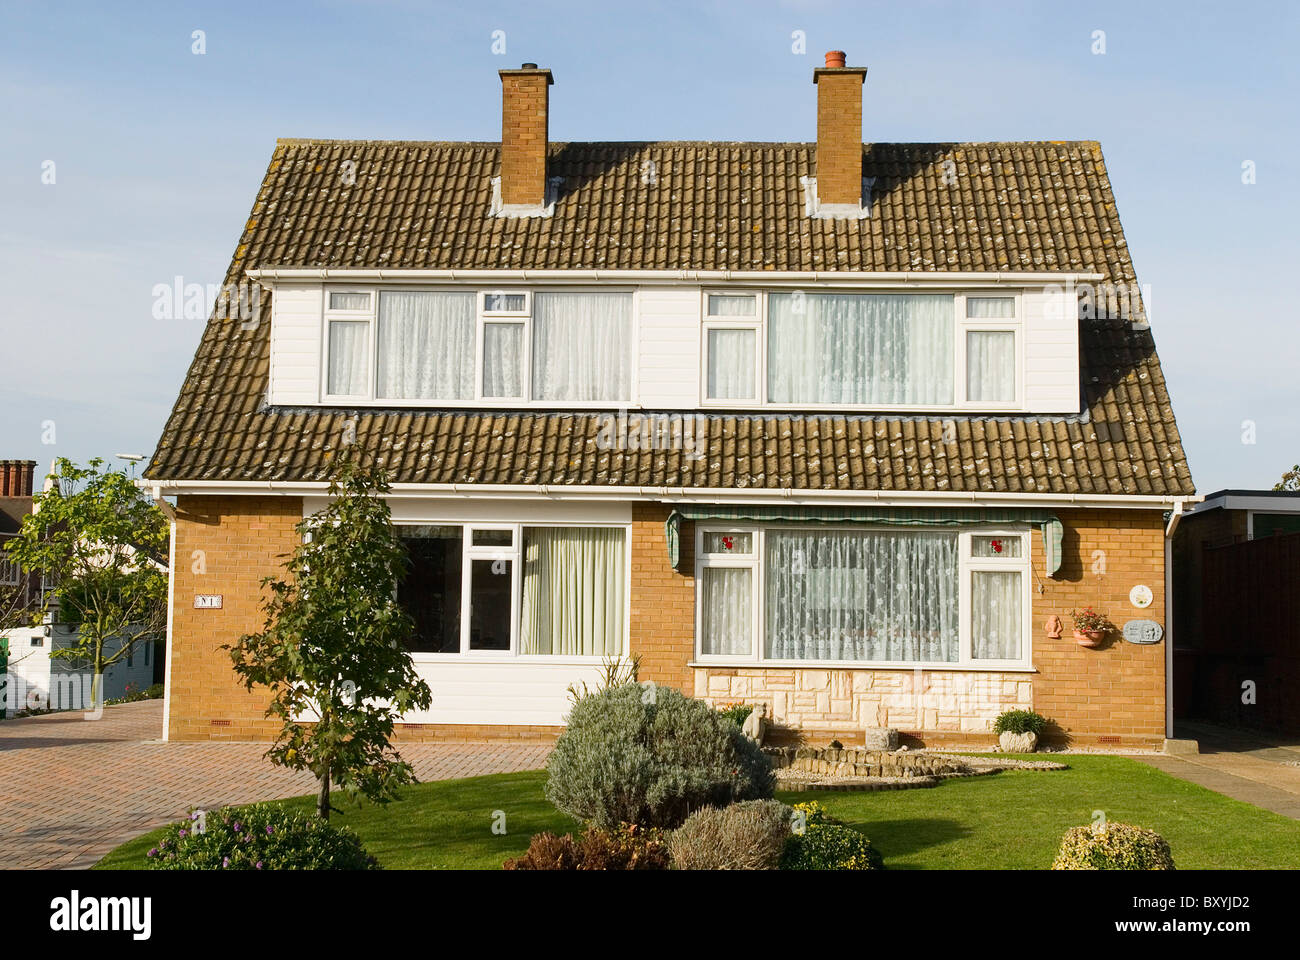 1960S Houses 1960S Semi Detached Houses Ipswich Suffolk Uk Stock Photo Royalty